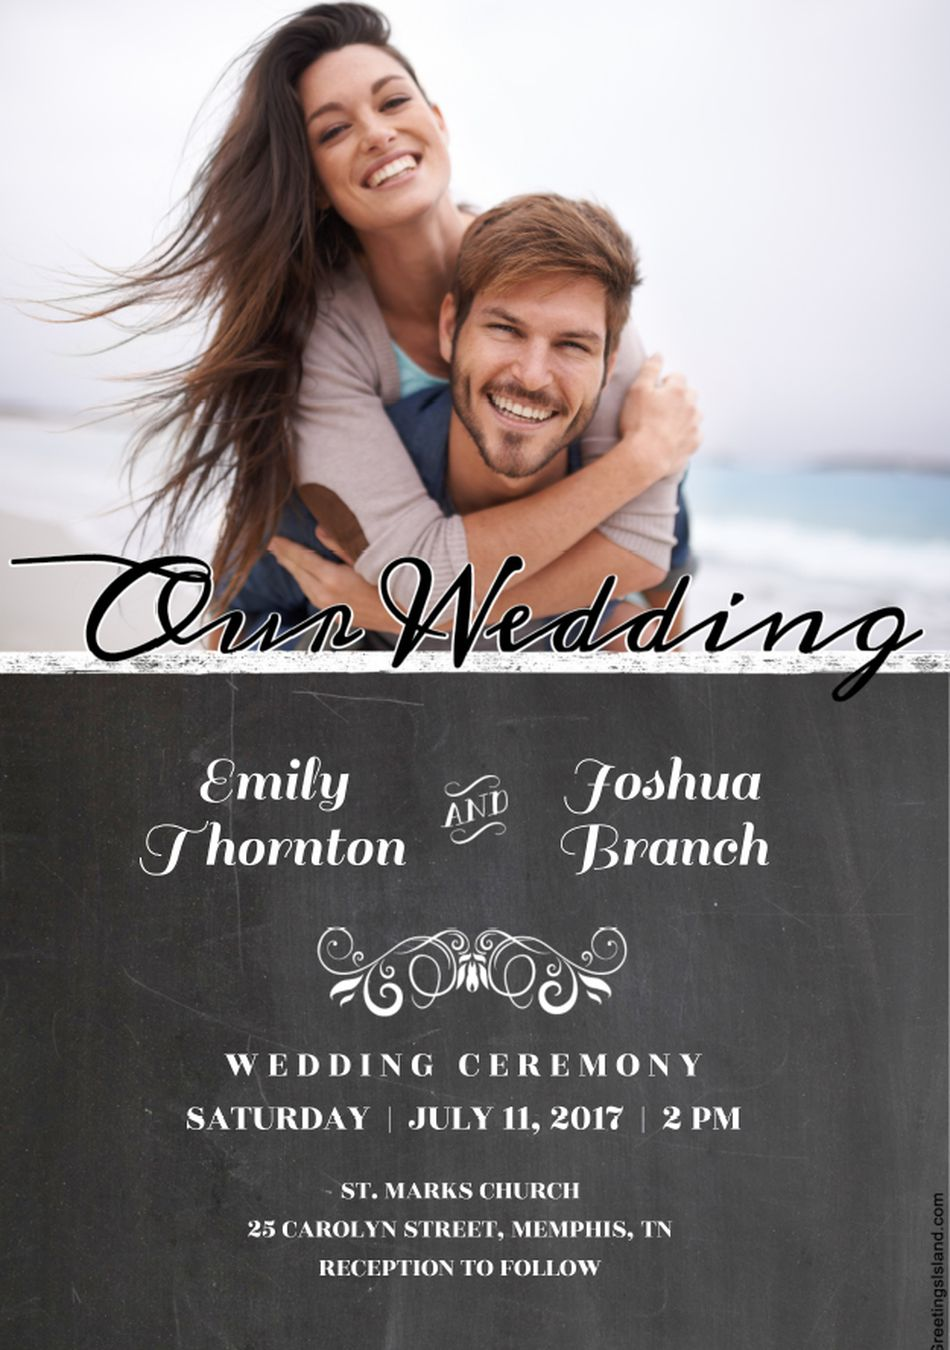 Free Wedding Invitation Templates You Can Customize - Wedding invitation with photo templates